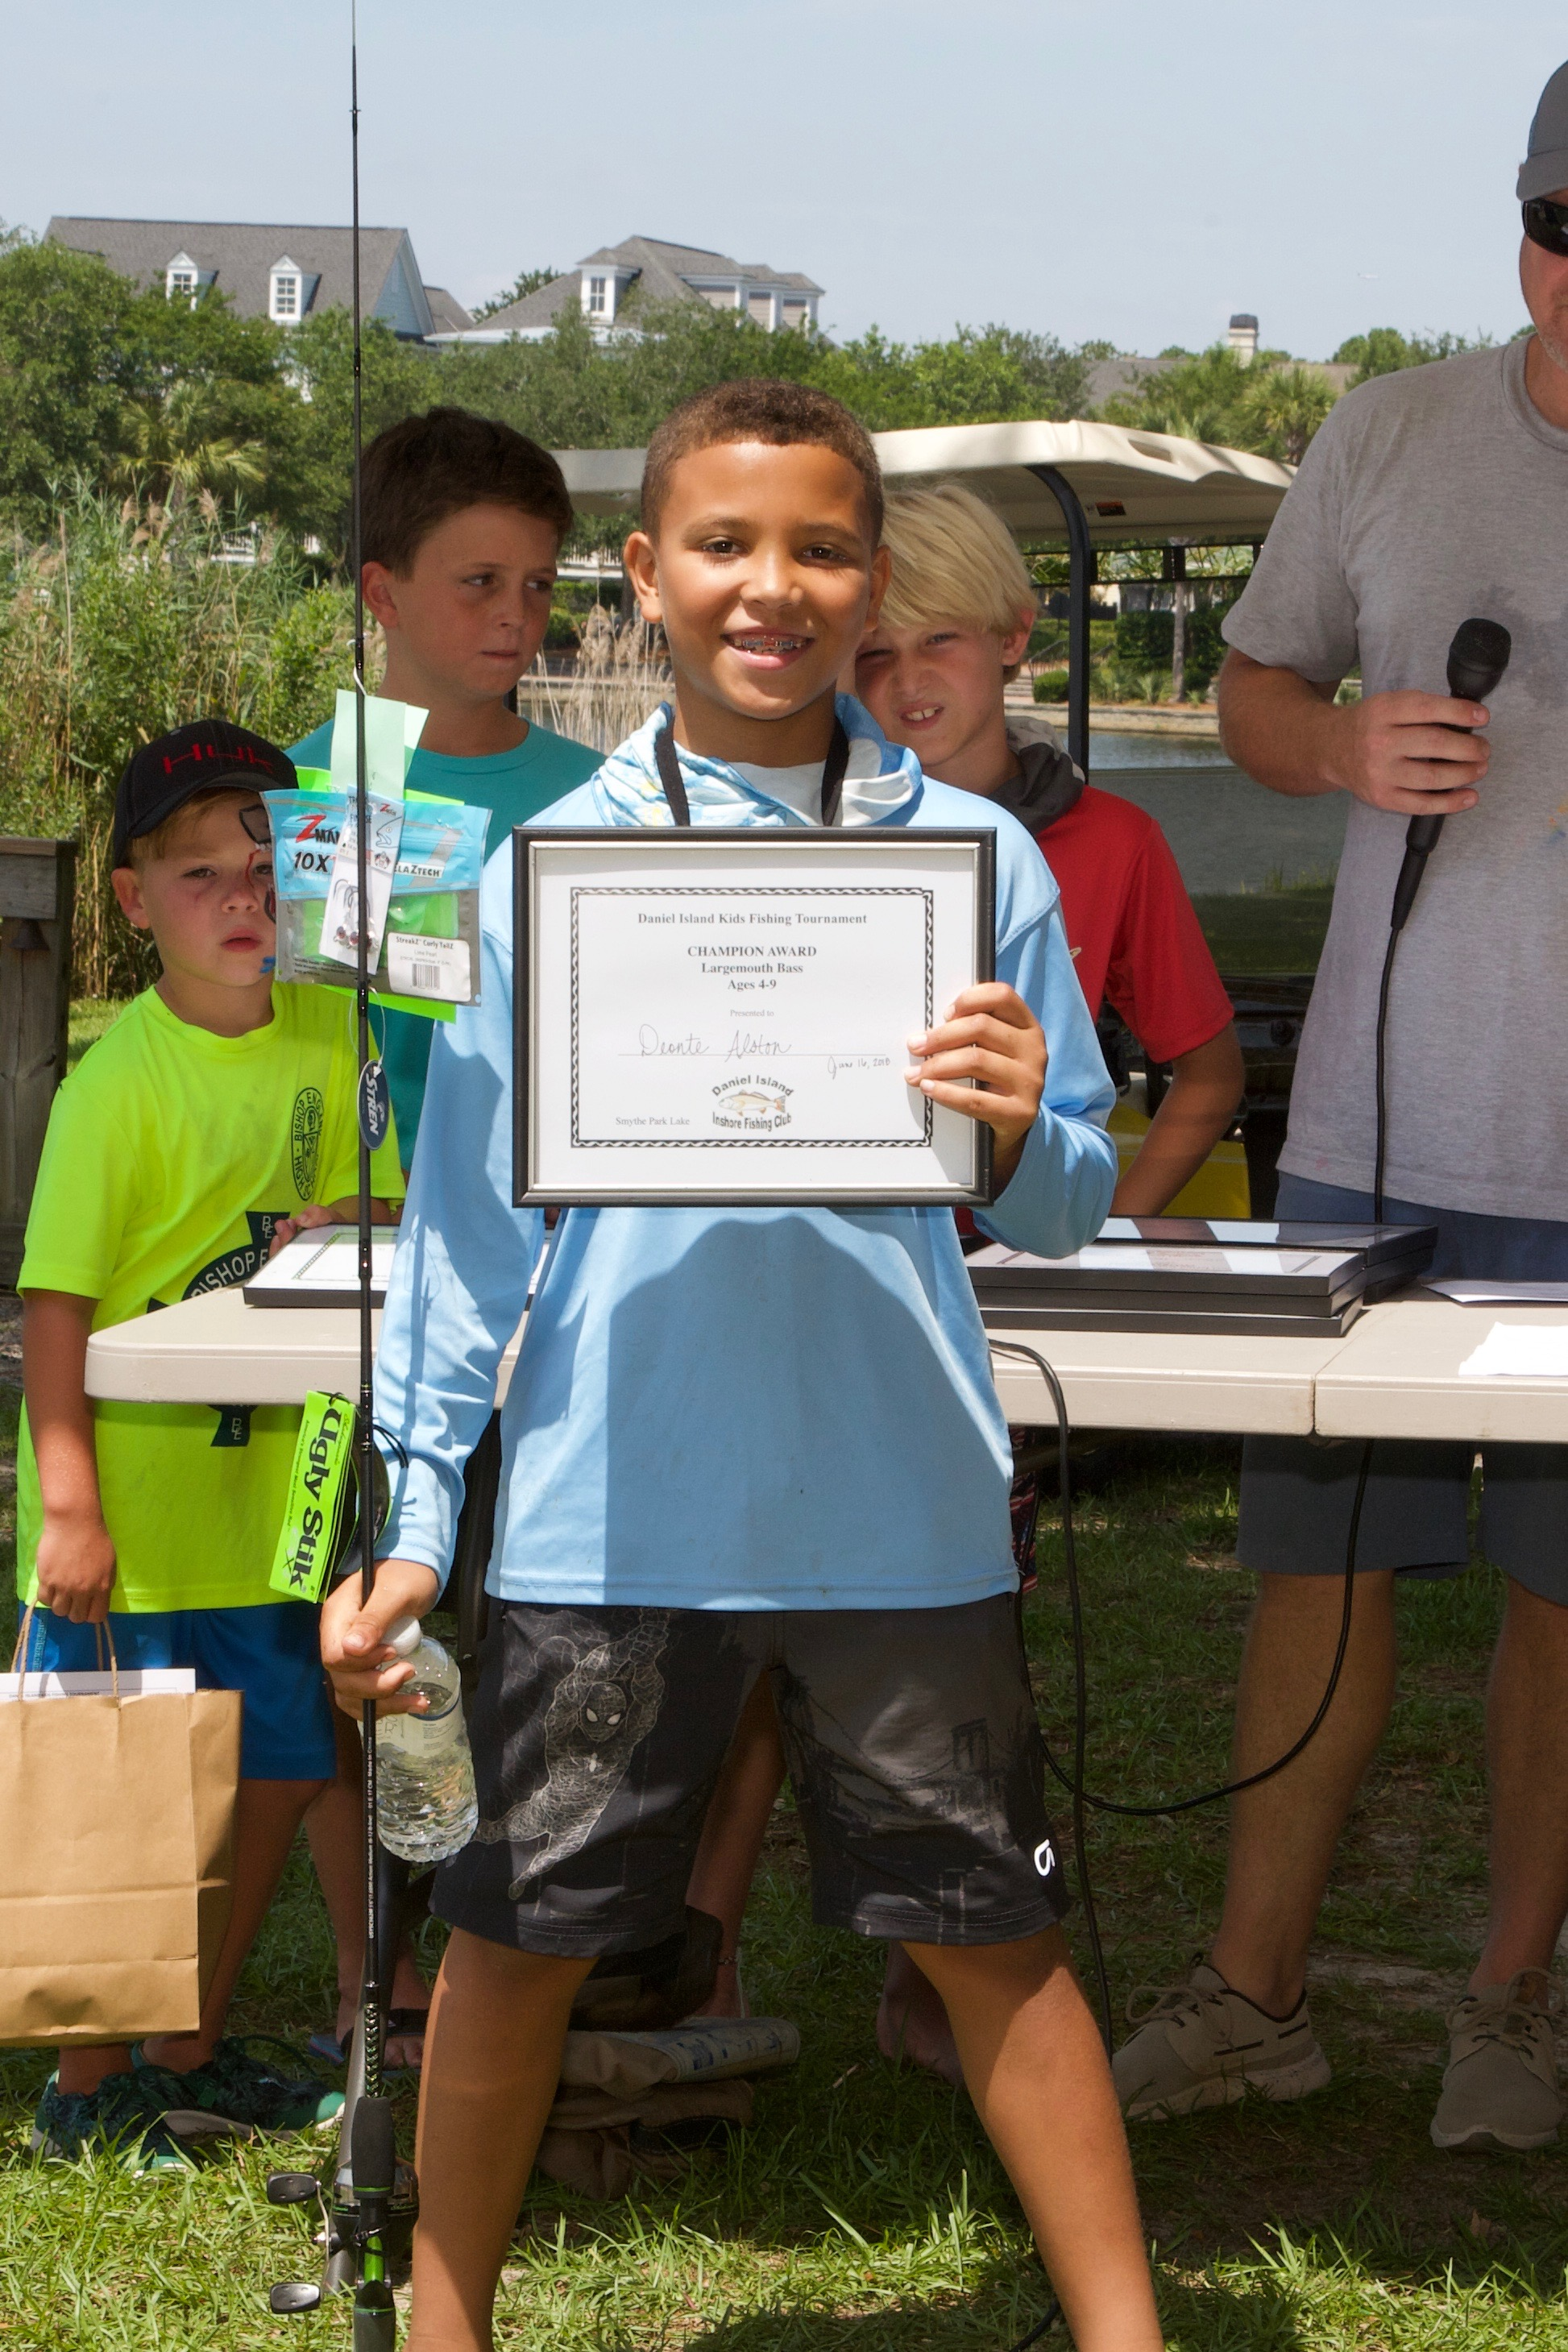 Deonte Alston – Champion Award, Largemouth Bass, Ages 4-9.